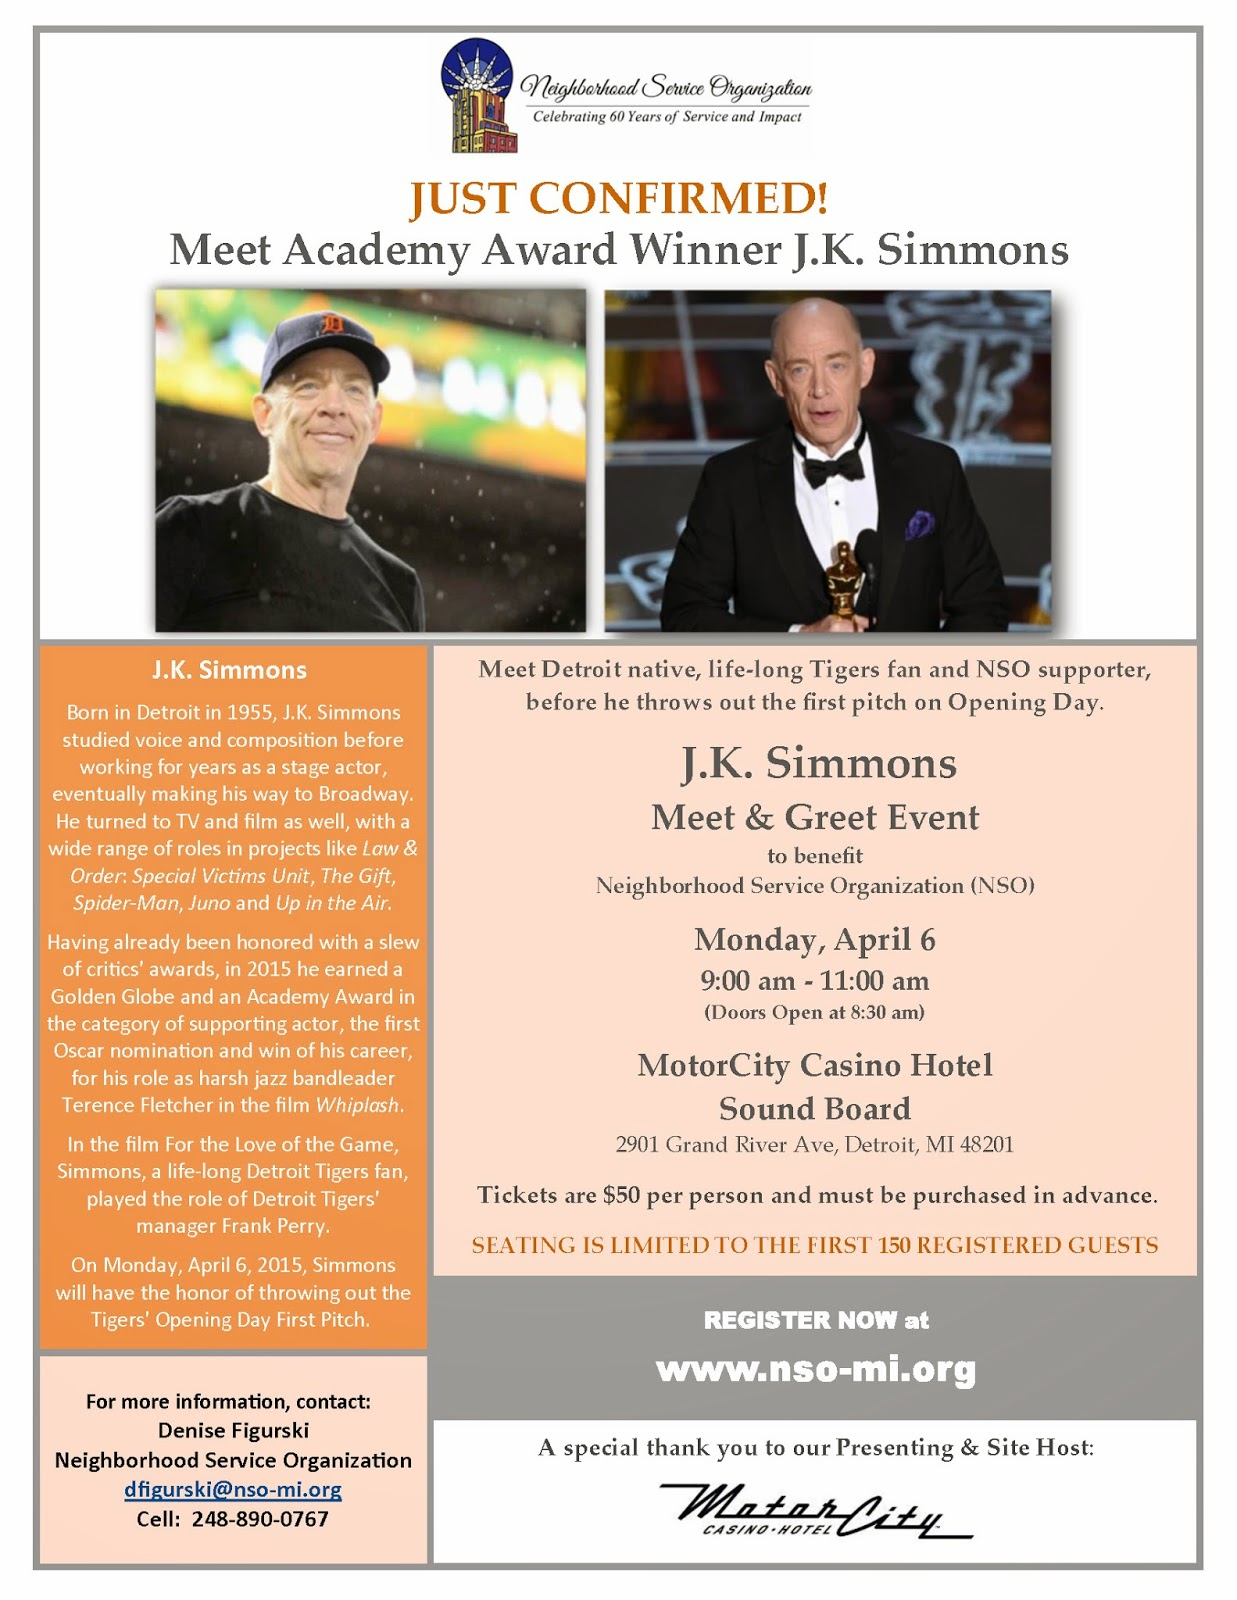 Detroit J K Simmons Benefit Meet And Greet Mon 4 6 At